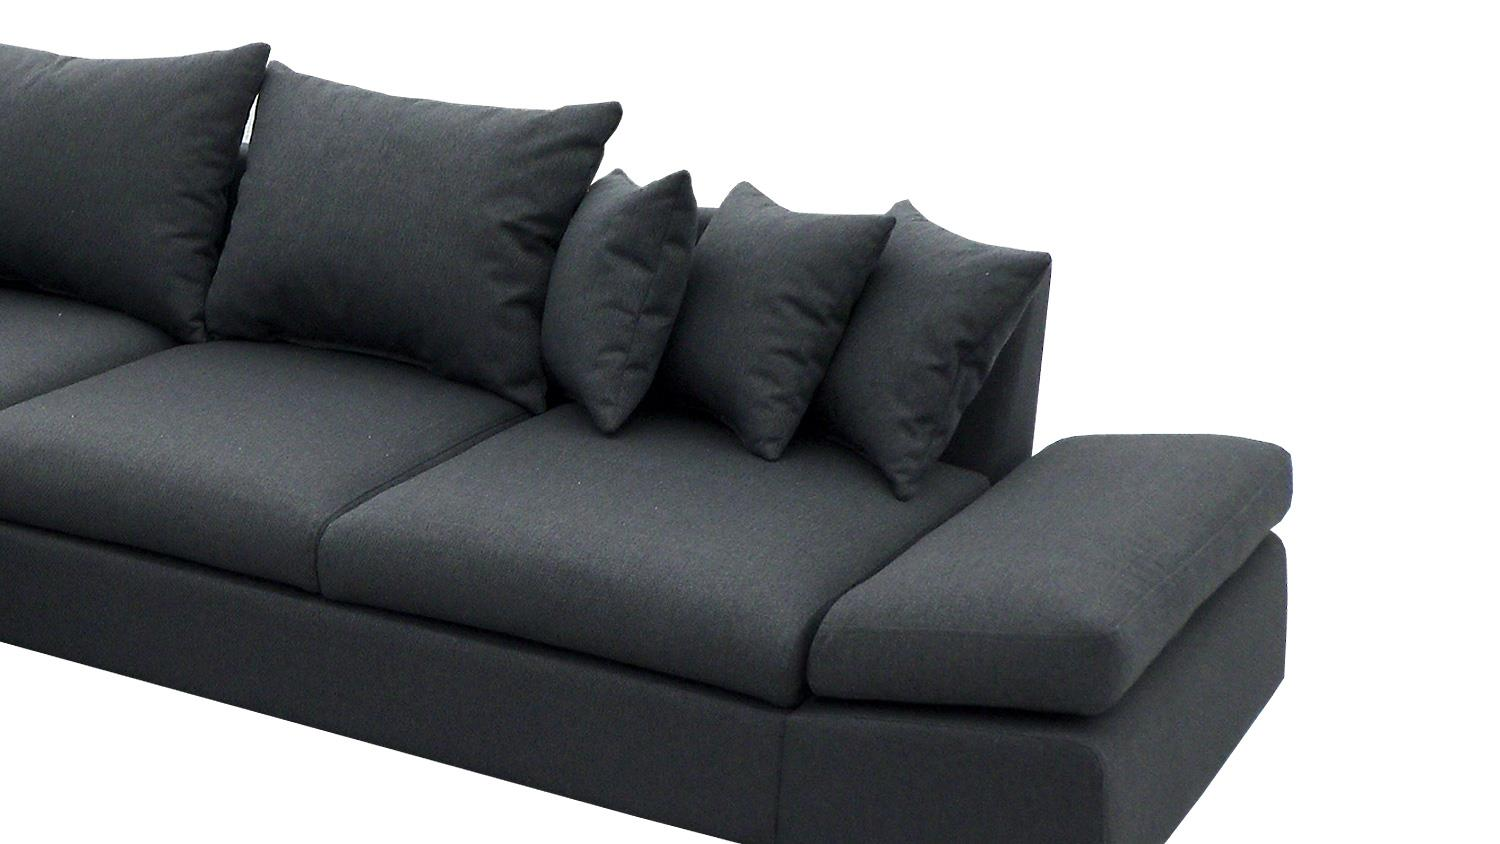 ecksofa scoota dunkelgrau inkl kissen nosagfederung rechts. Black Bedroom Furniture Sets. Home Design Ideas